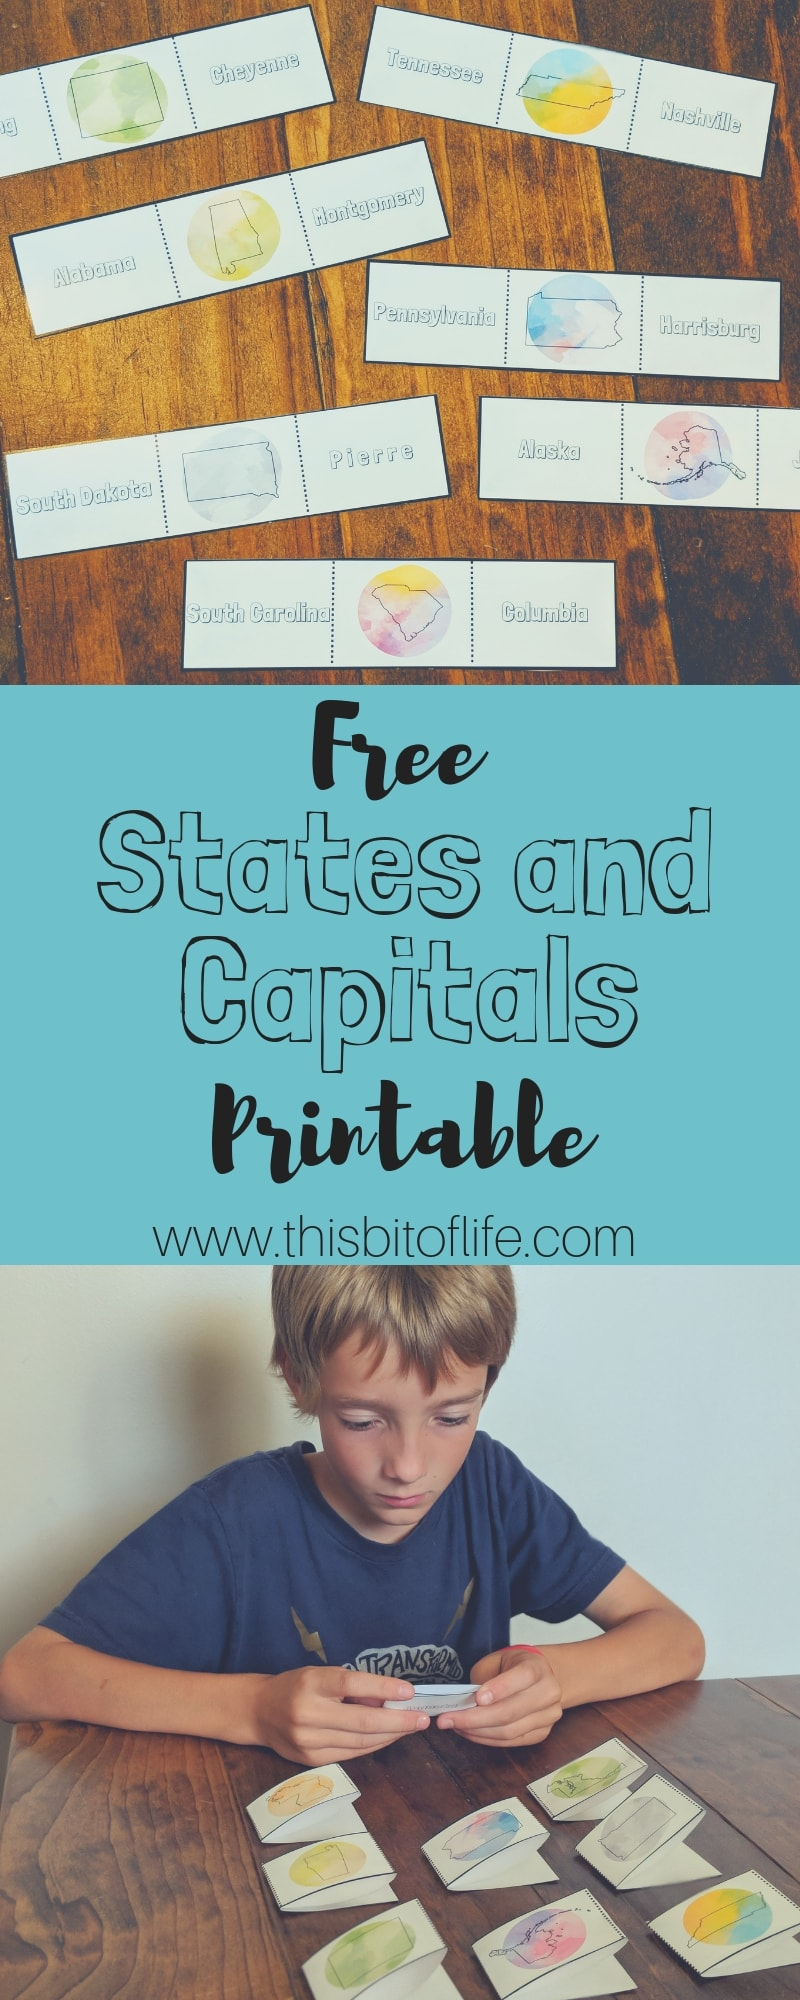 Free States and Capitals Printable. Need a fun way to learn states and capitals in your homeschool? My free printable states and capitals cards are perfect to use a flashcards, independent study, and even as a memory game. They're the best free printable you'll add to your homeschool for geography studies! #geography #statesandcapitals #homeschool #freeprintable